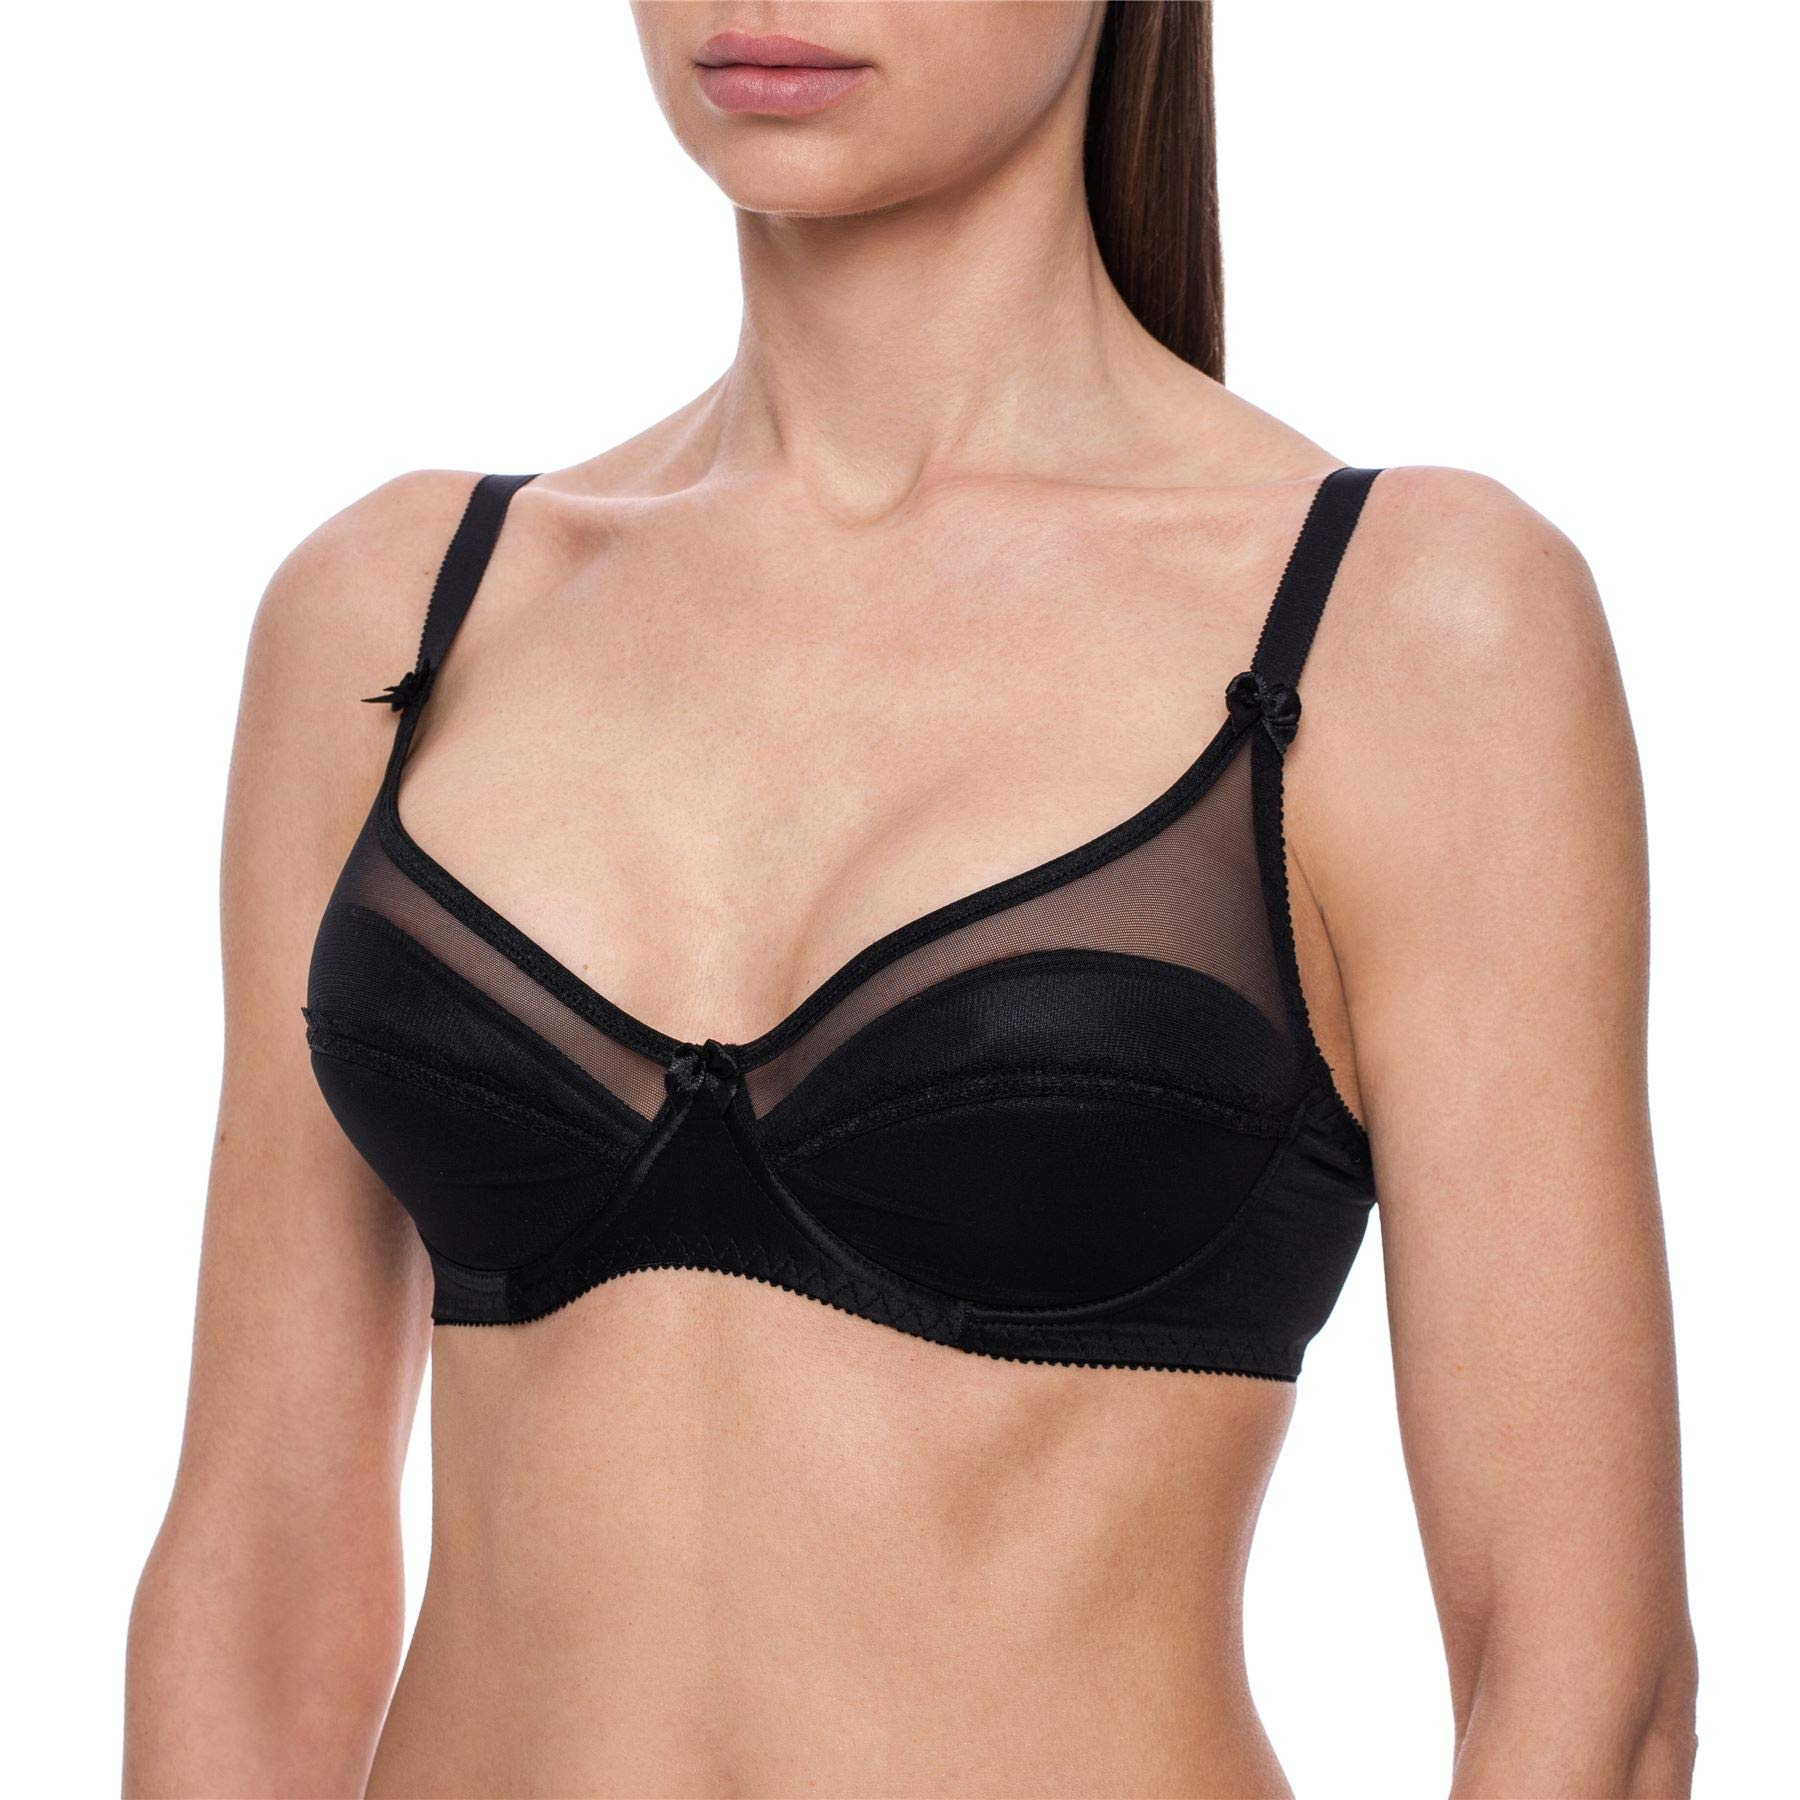 frugue Women's Minimizer Full Coverage Plus Size Underwire Padded Bra